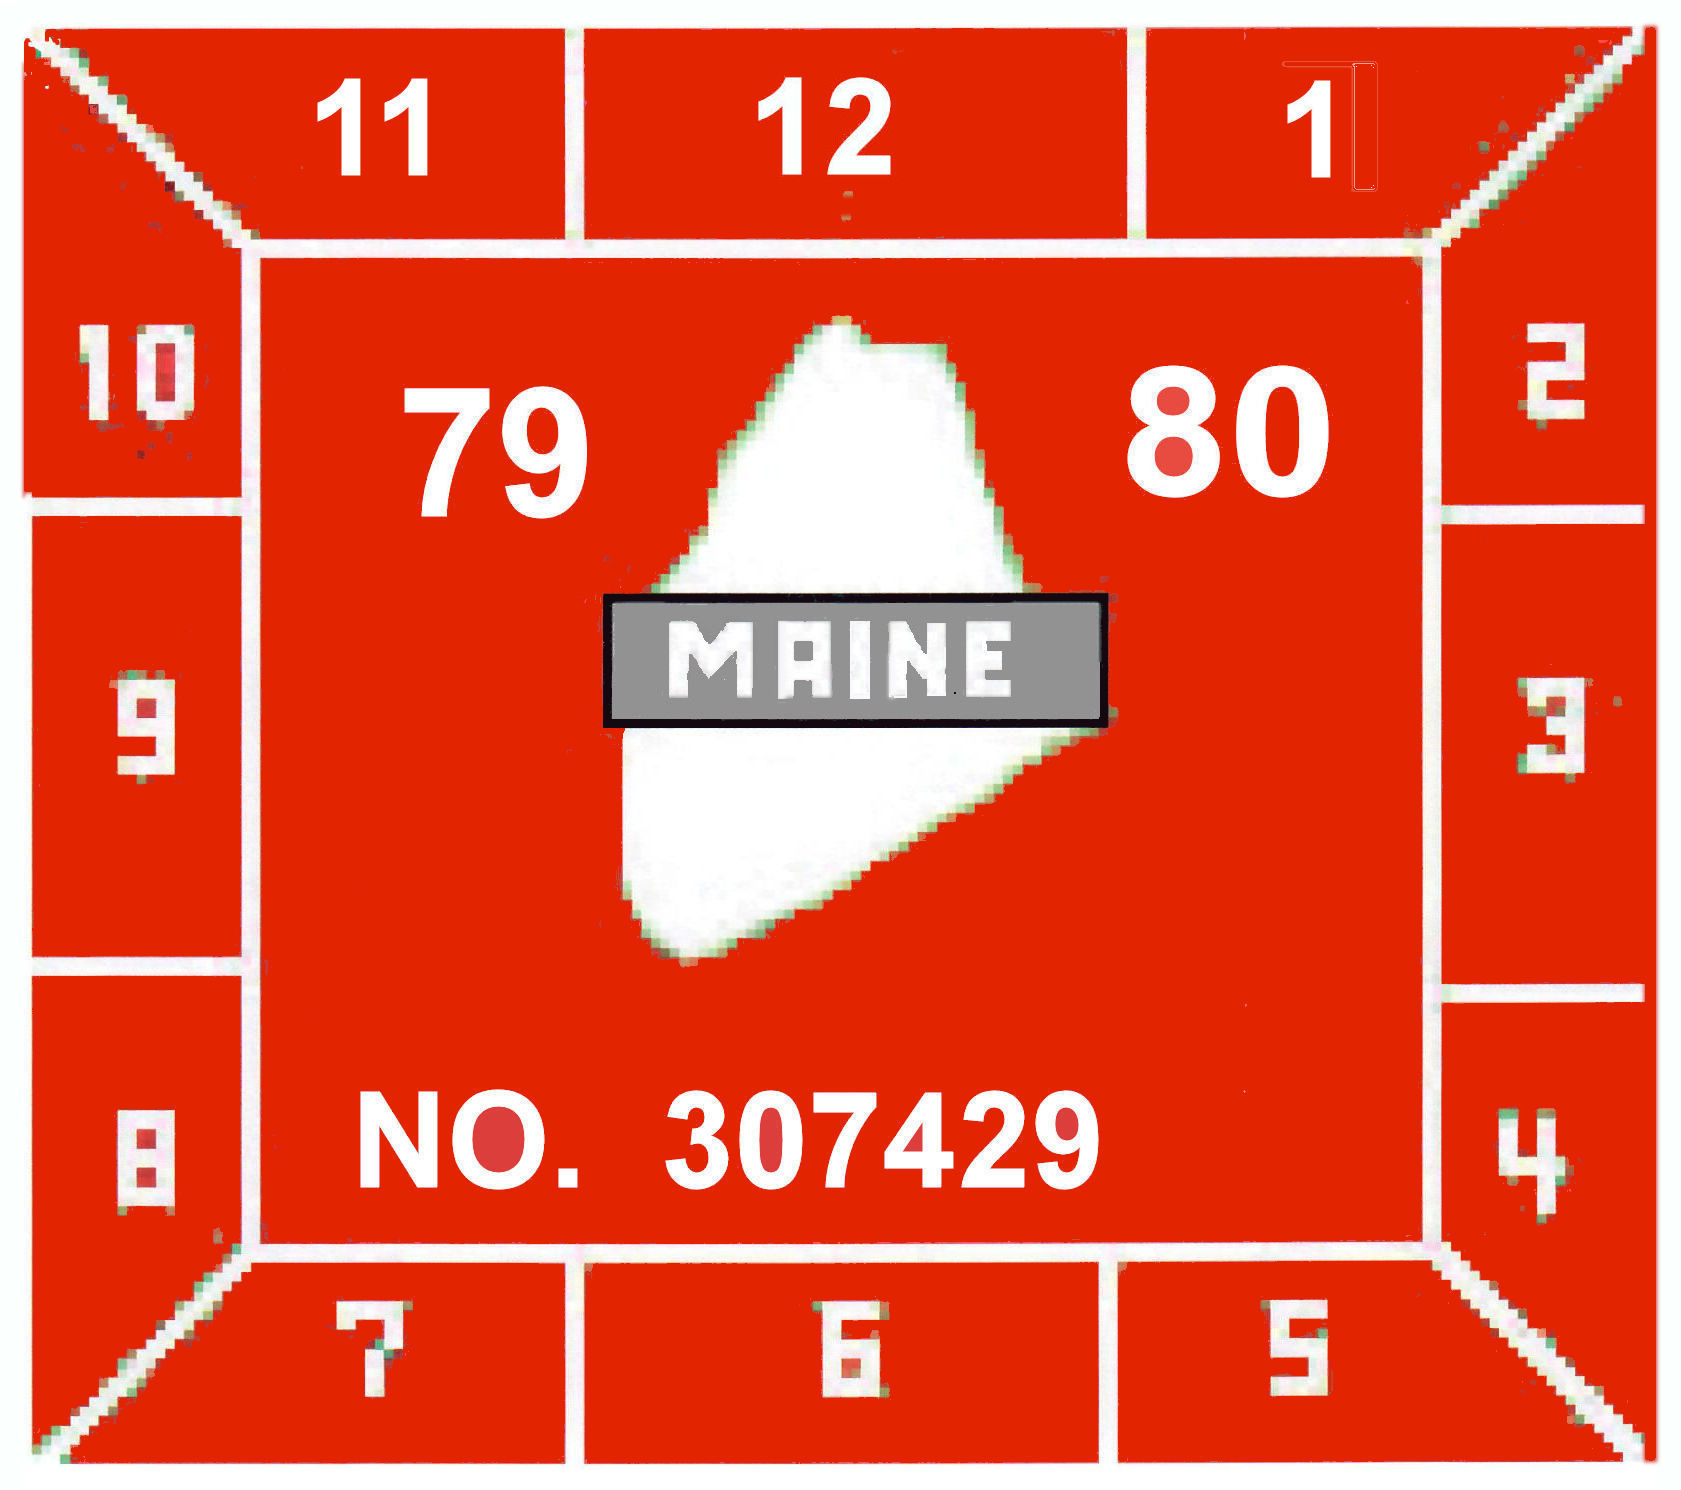 1979-80 MAINE iNSPECTION - Click Image to Close